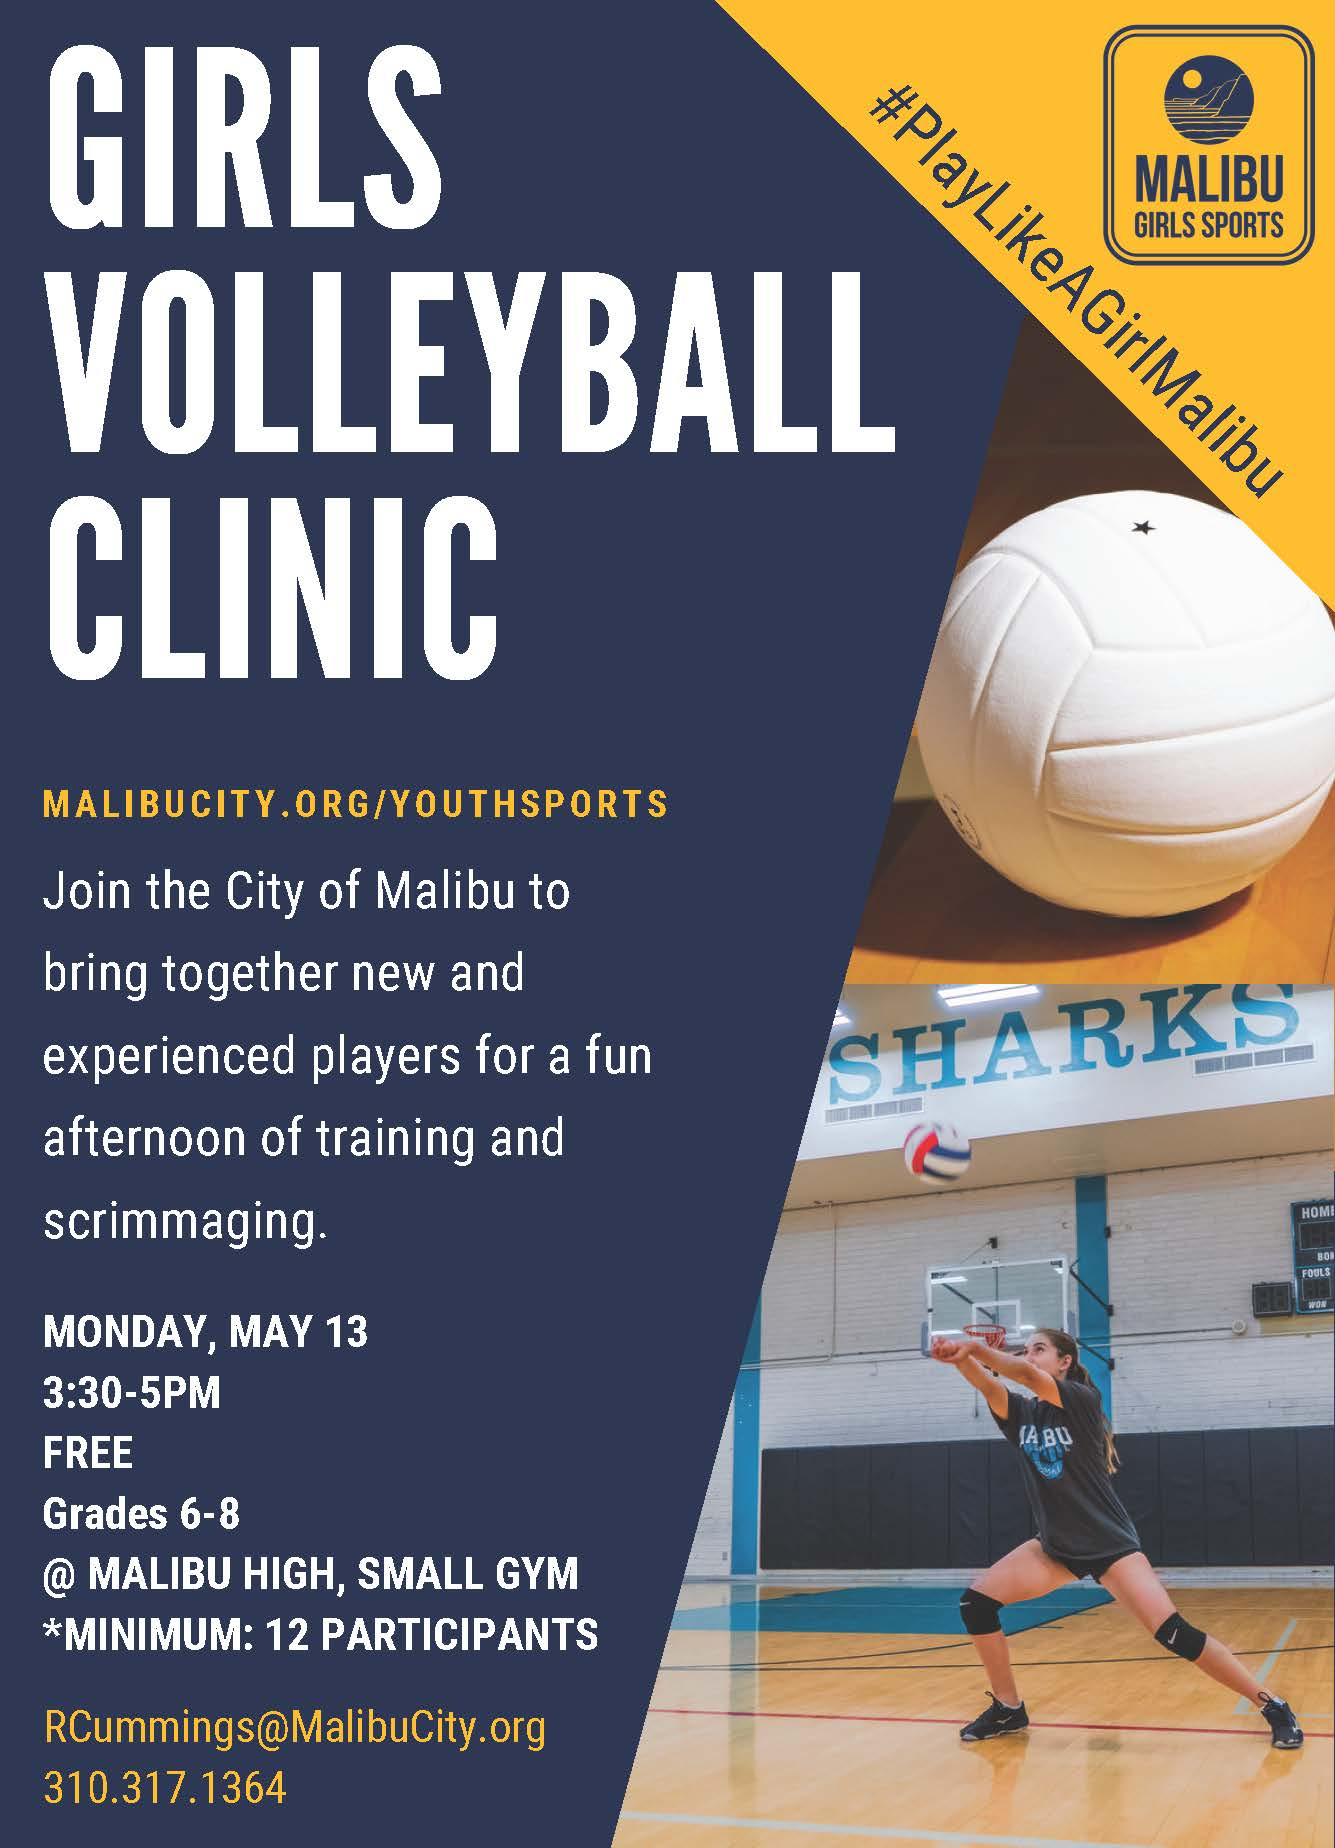 Girls Volleyball Clinic Flyer